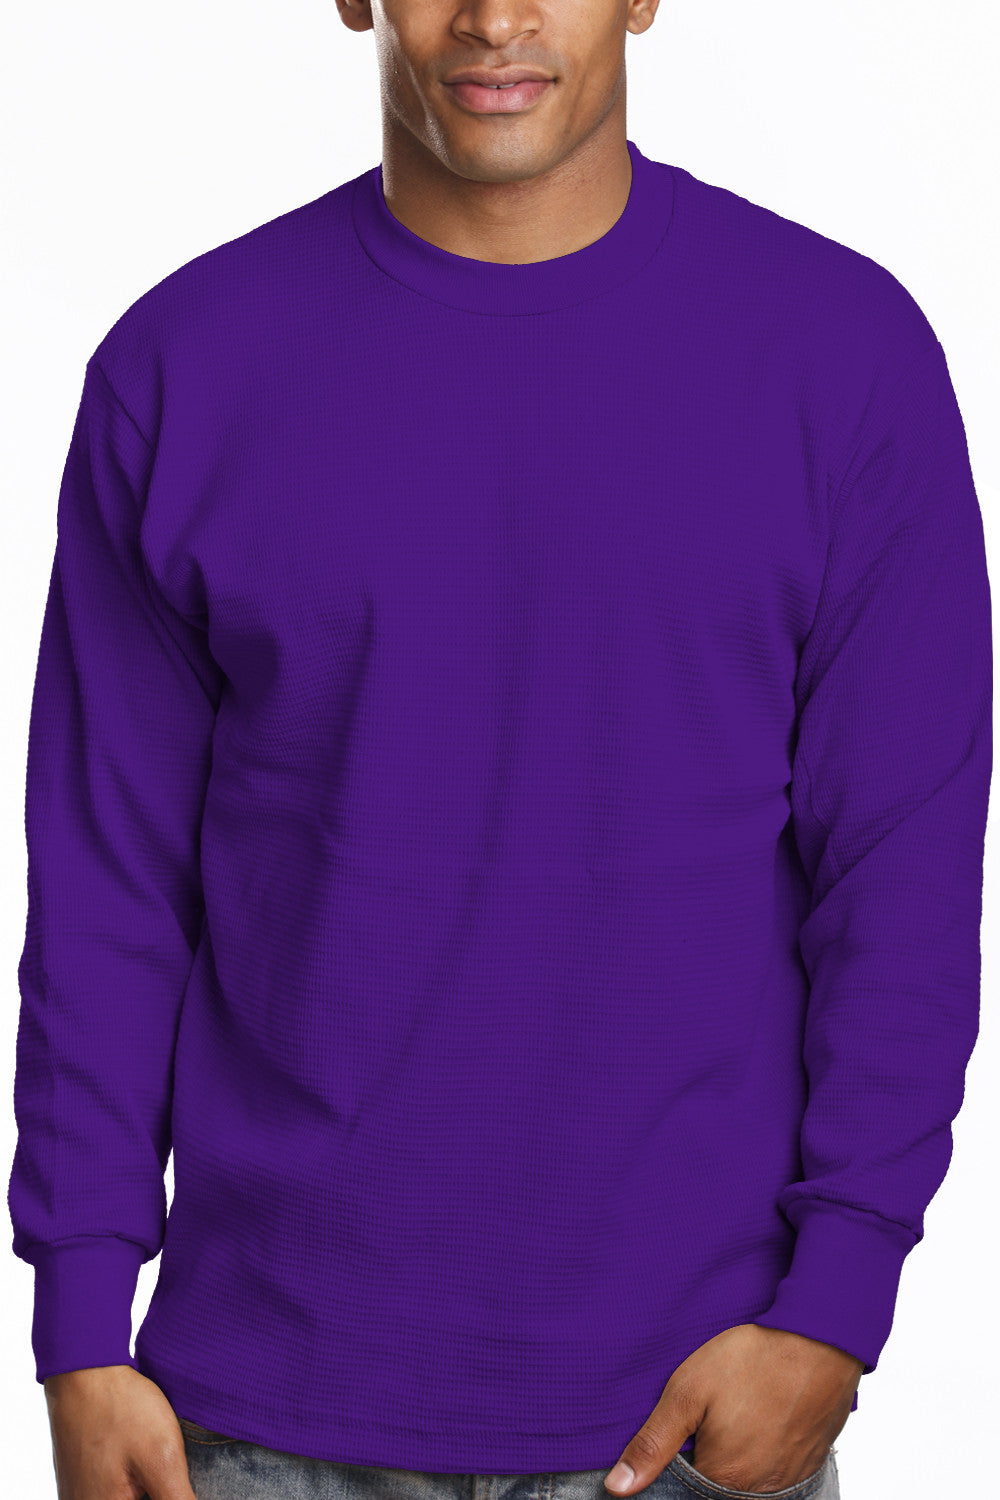 Mens Long Sleeve Thermal Knit Top Shirt Purple